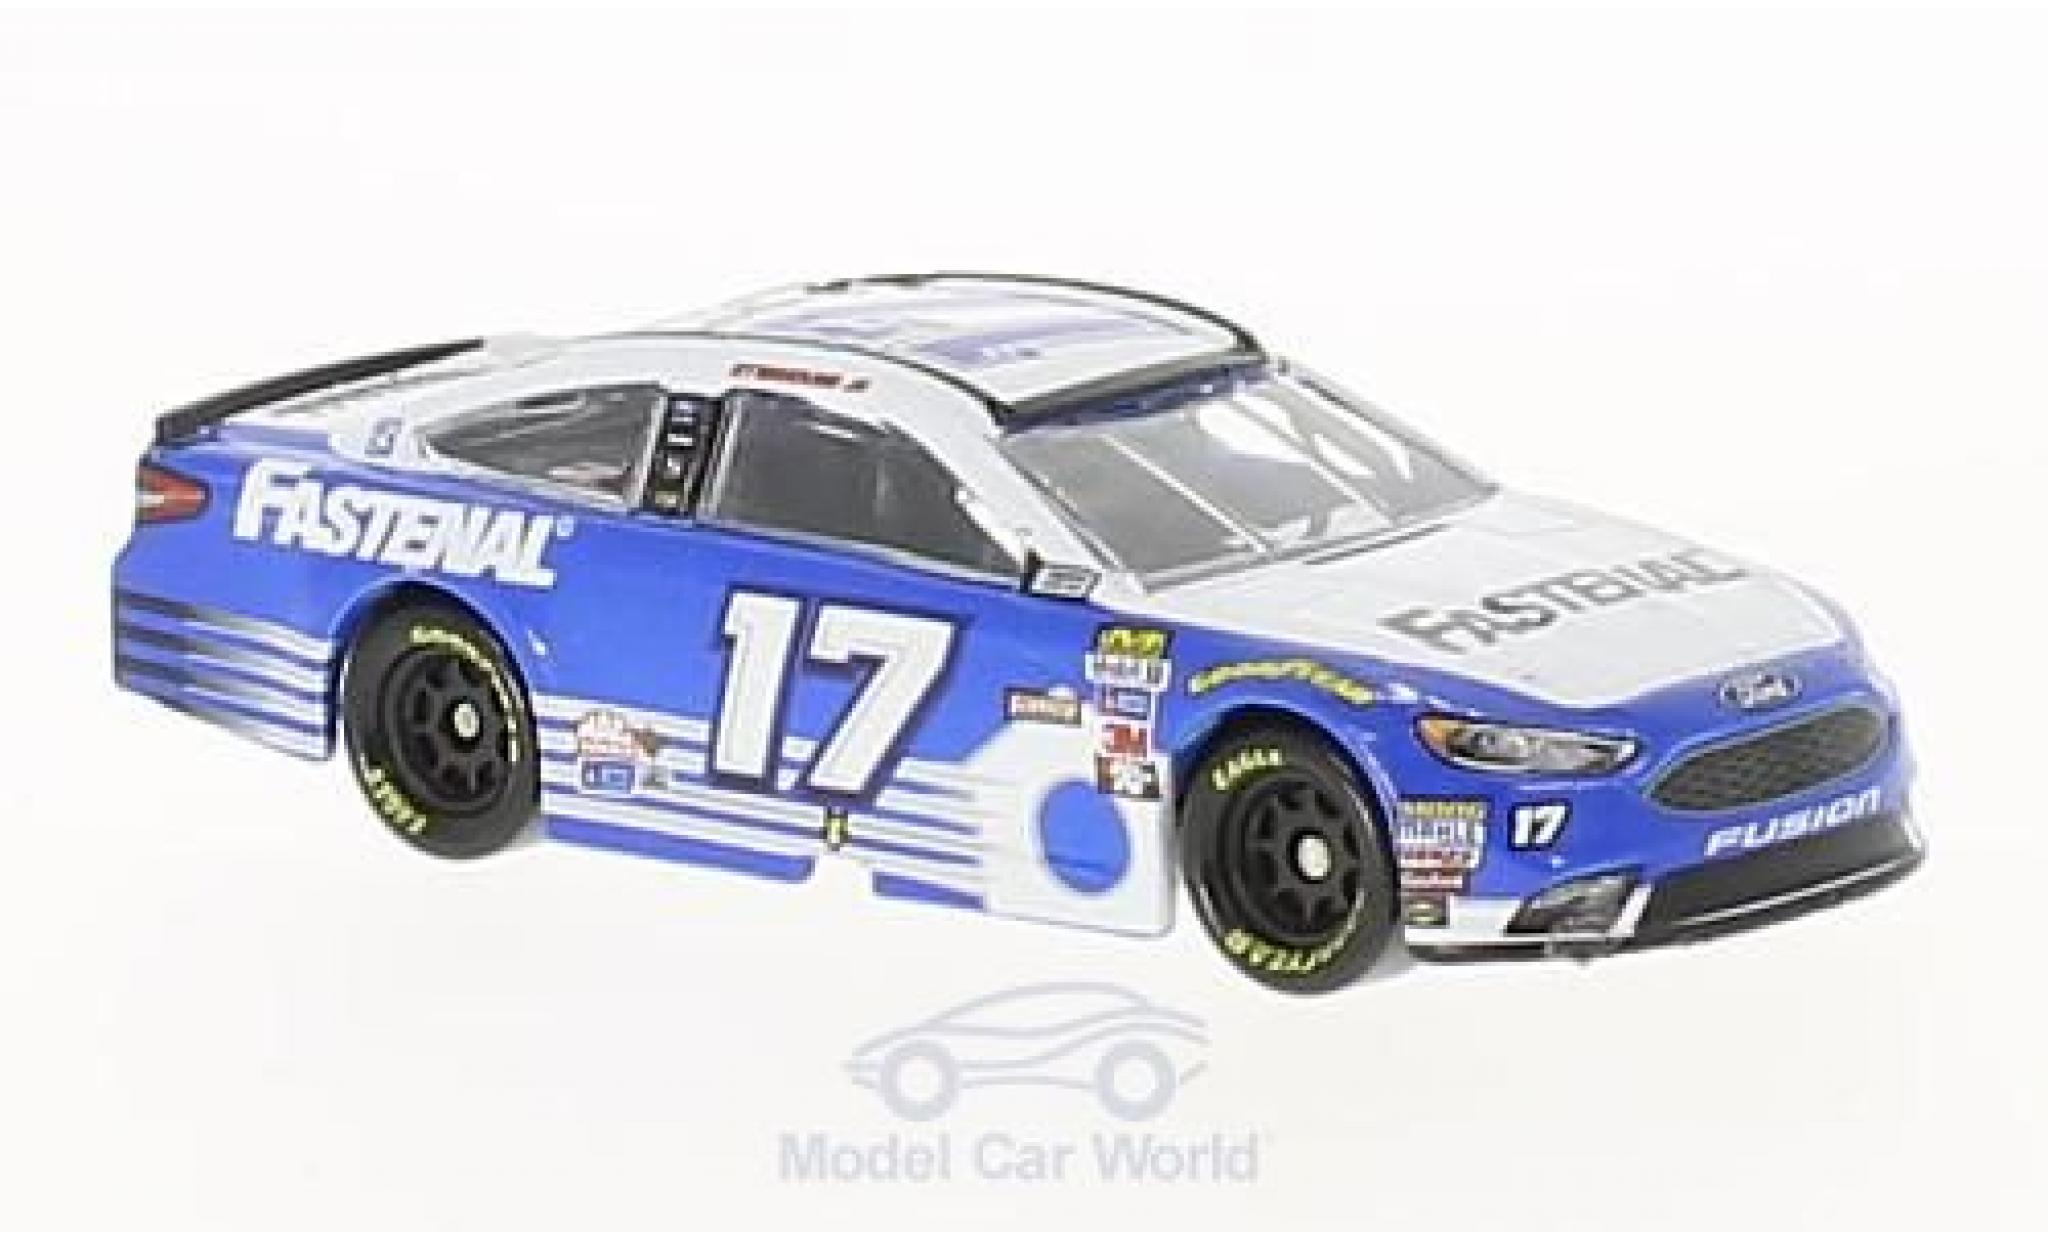 Ford Fusion 1/64 Lionel Racing No.17 Roush Fenway Racing Fastenal Nascar 2017 R.Stenhouse Jr.